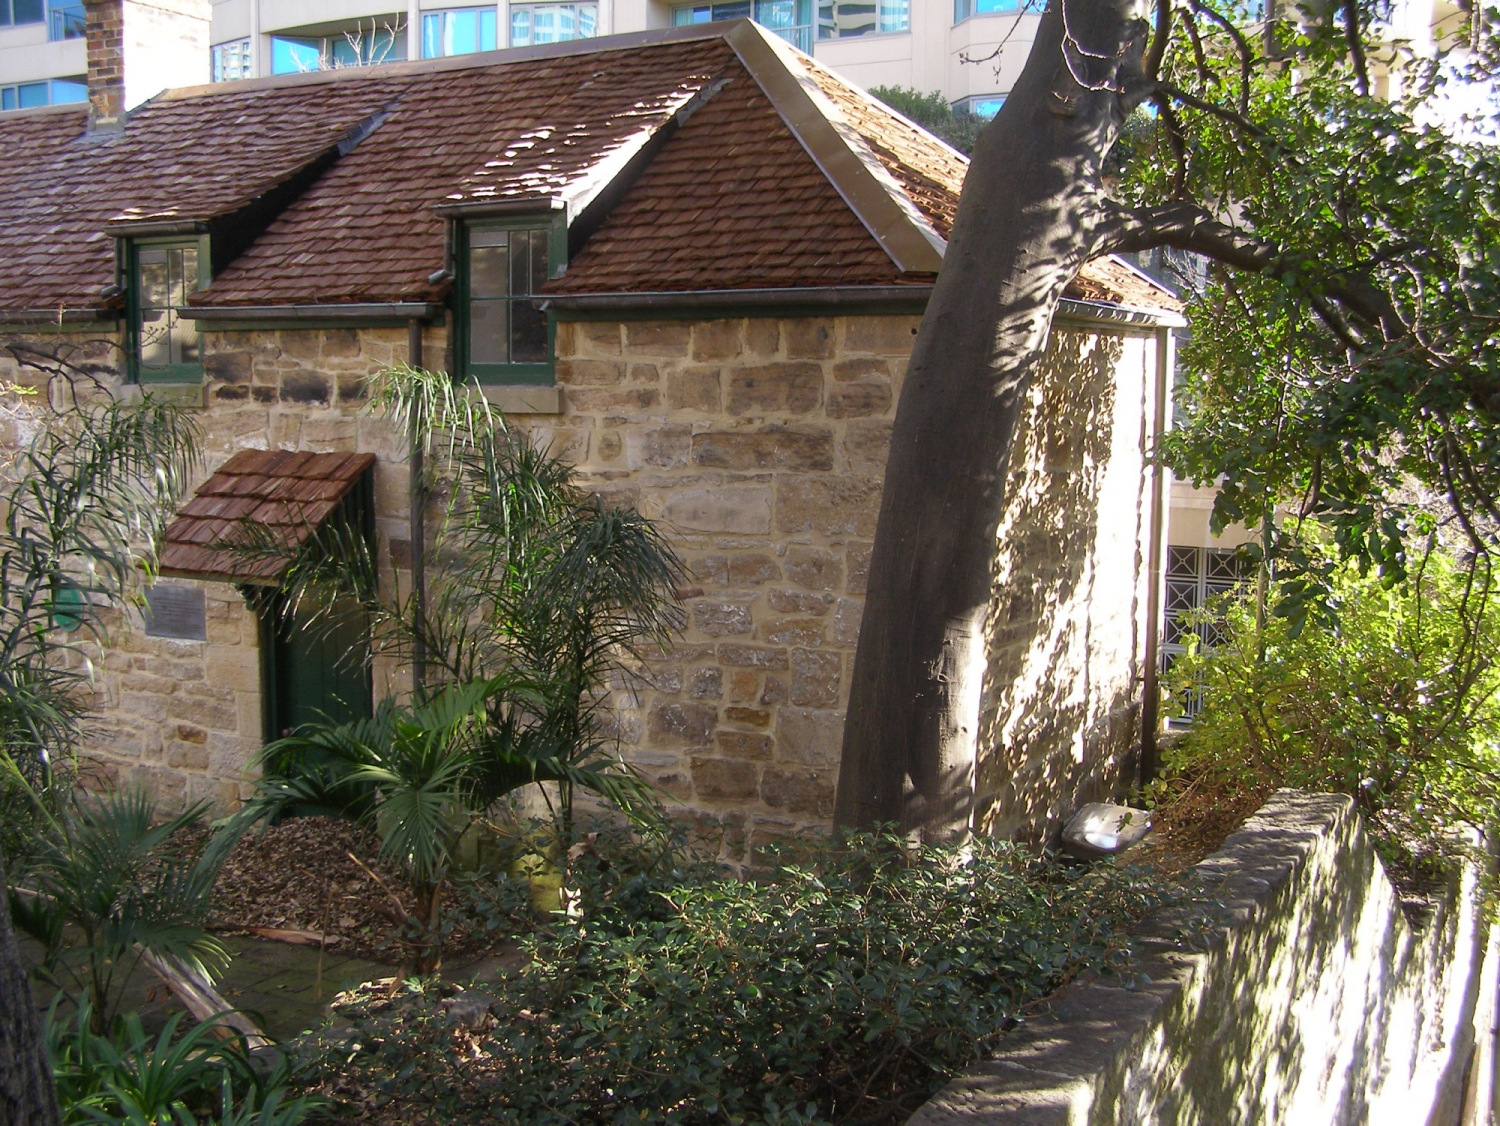 View of sandstone walled cottage with trees.